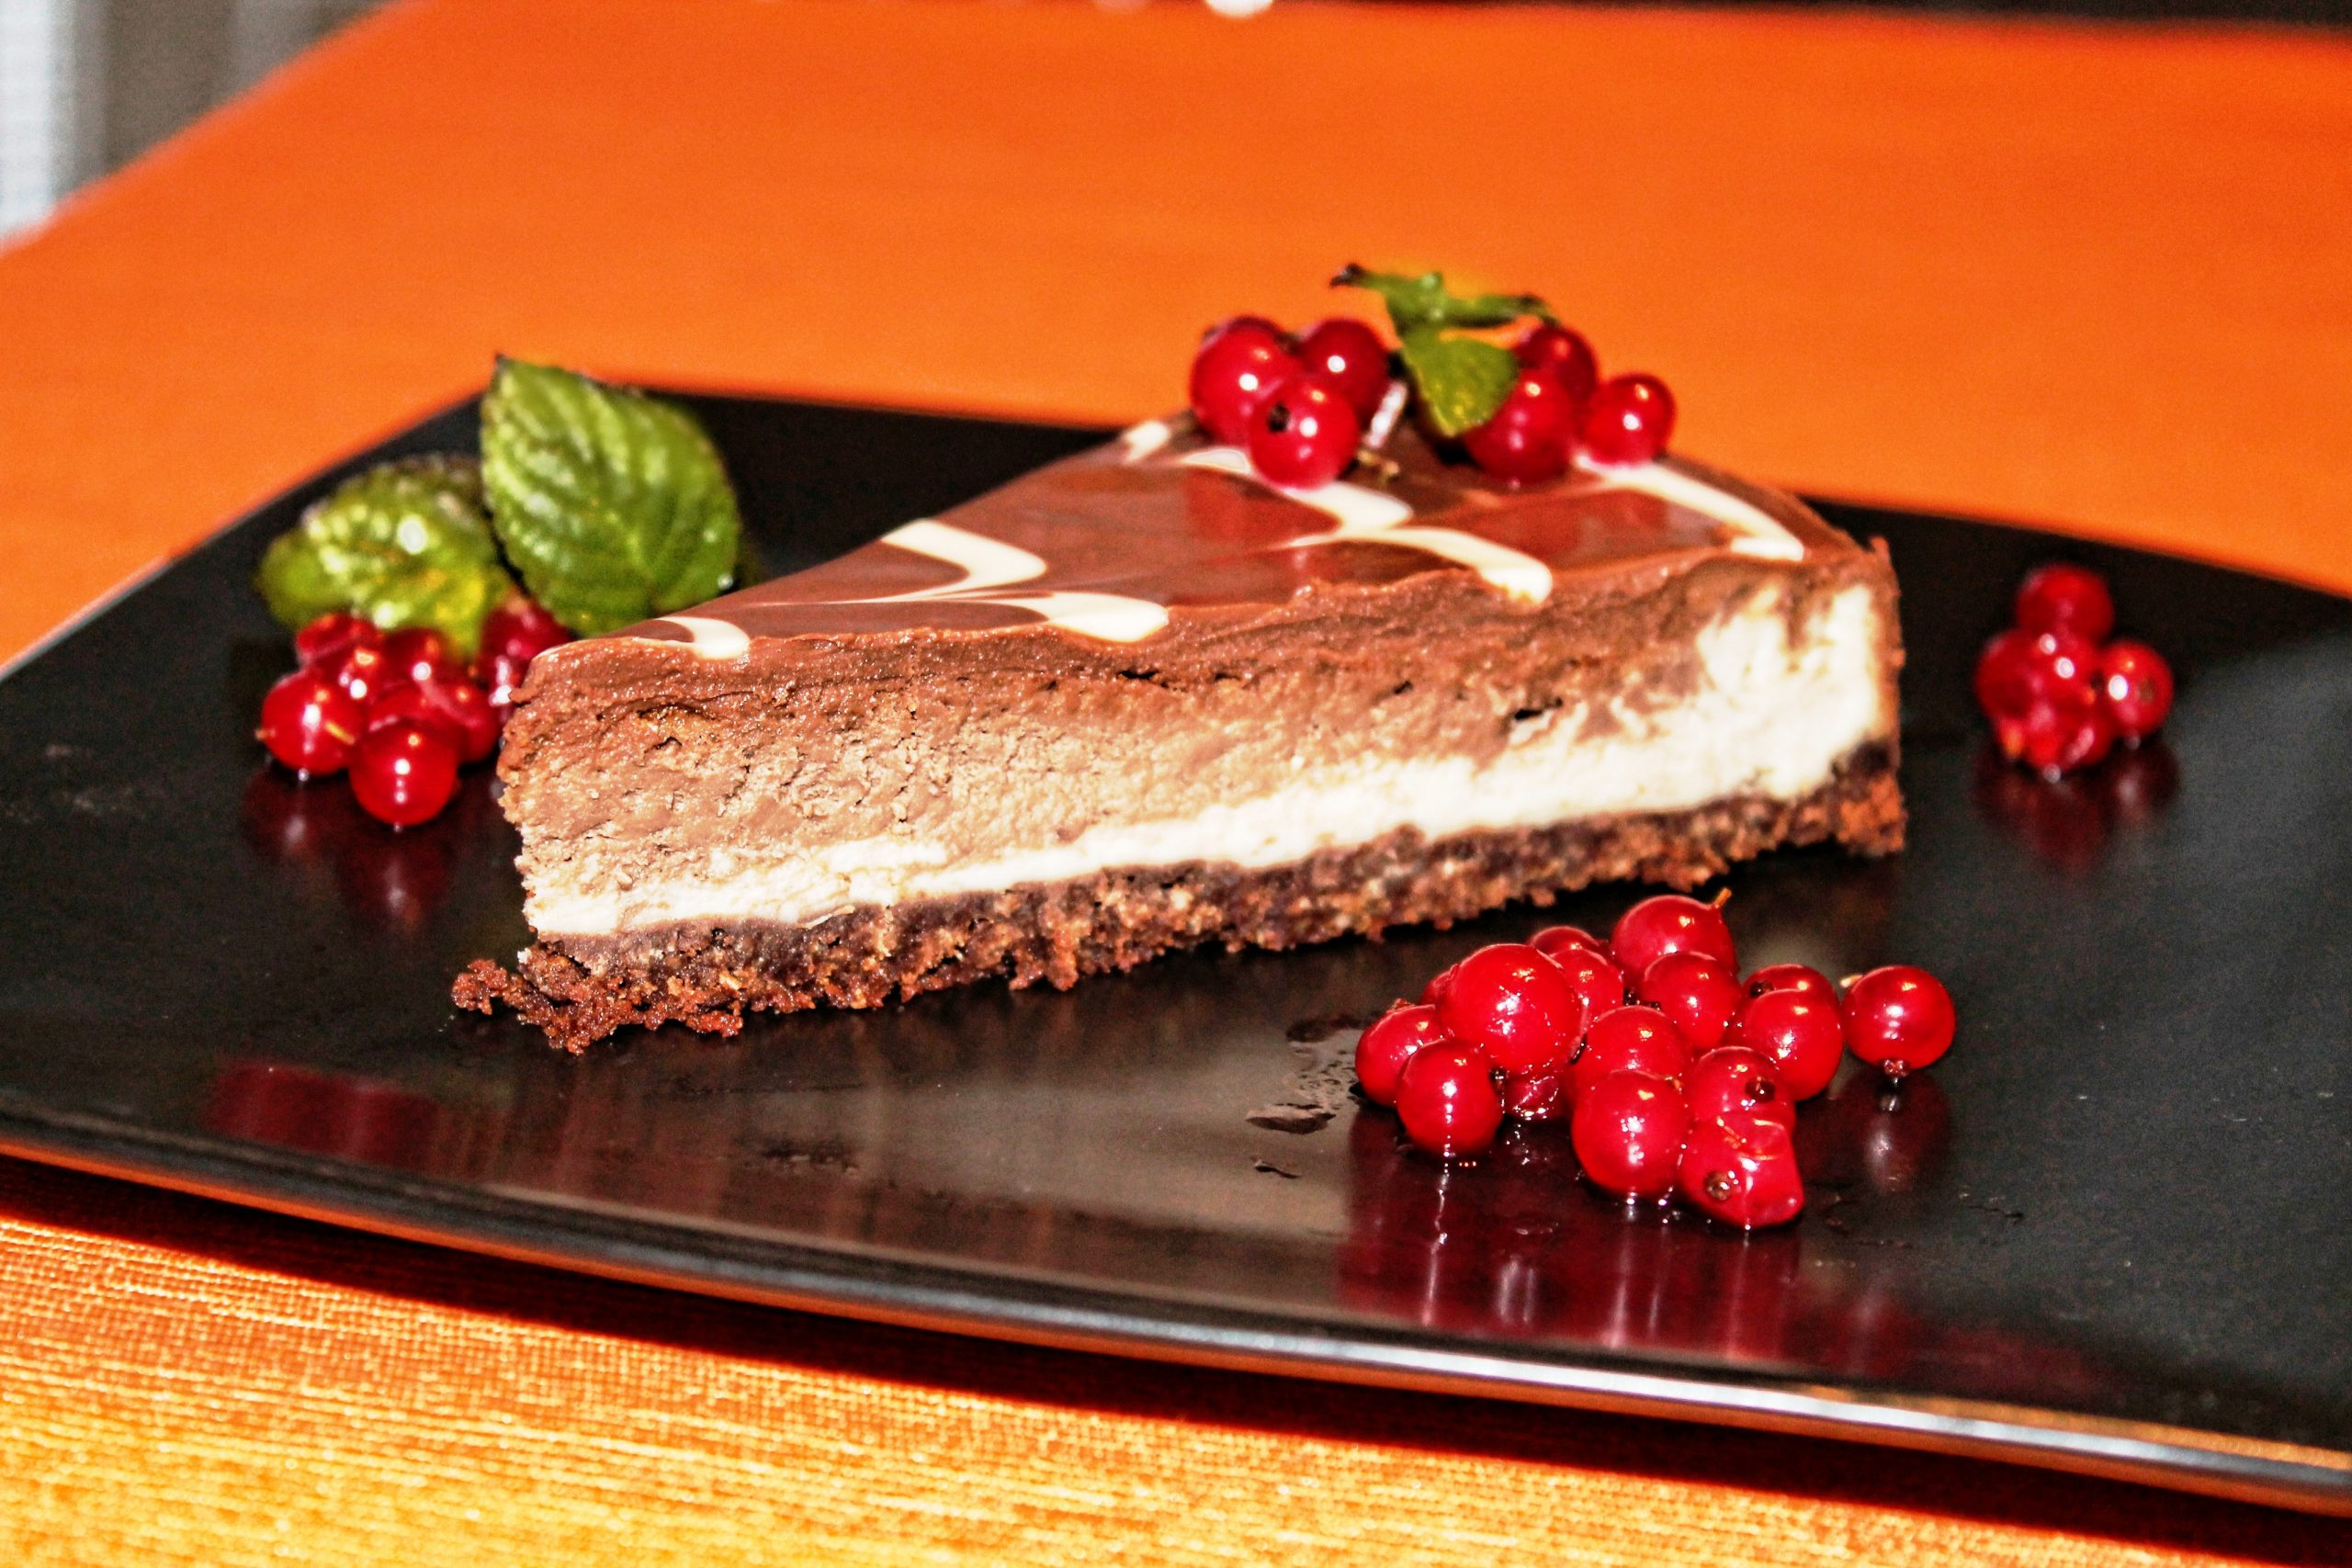 Fudge Cheesecake served on a black plate with current berries